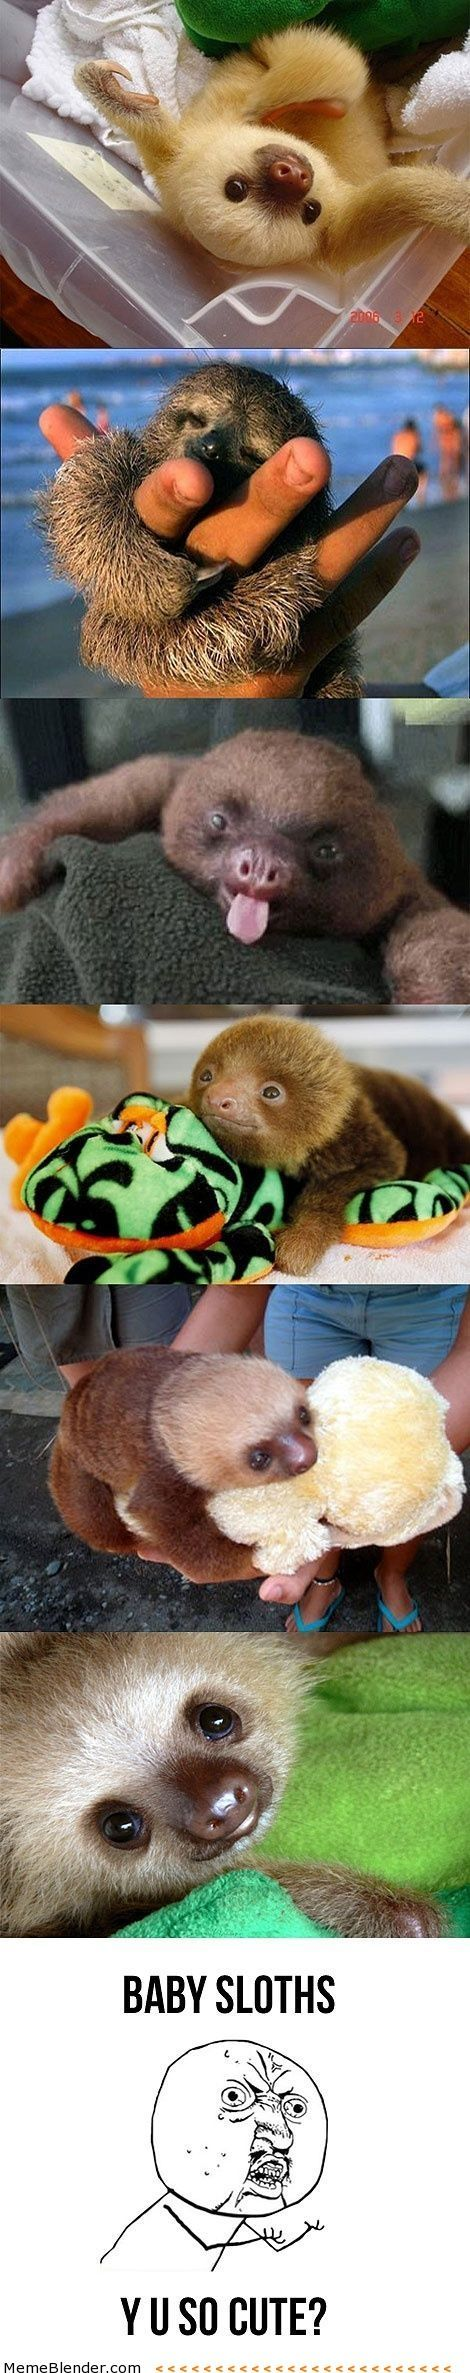 Do you love sloths? Do you love baby sloths? Then take a look at our website, it's dedicated to cute pictures of sloths: http://all-things-sloth.com/sloth-pictures/